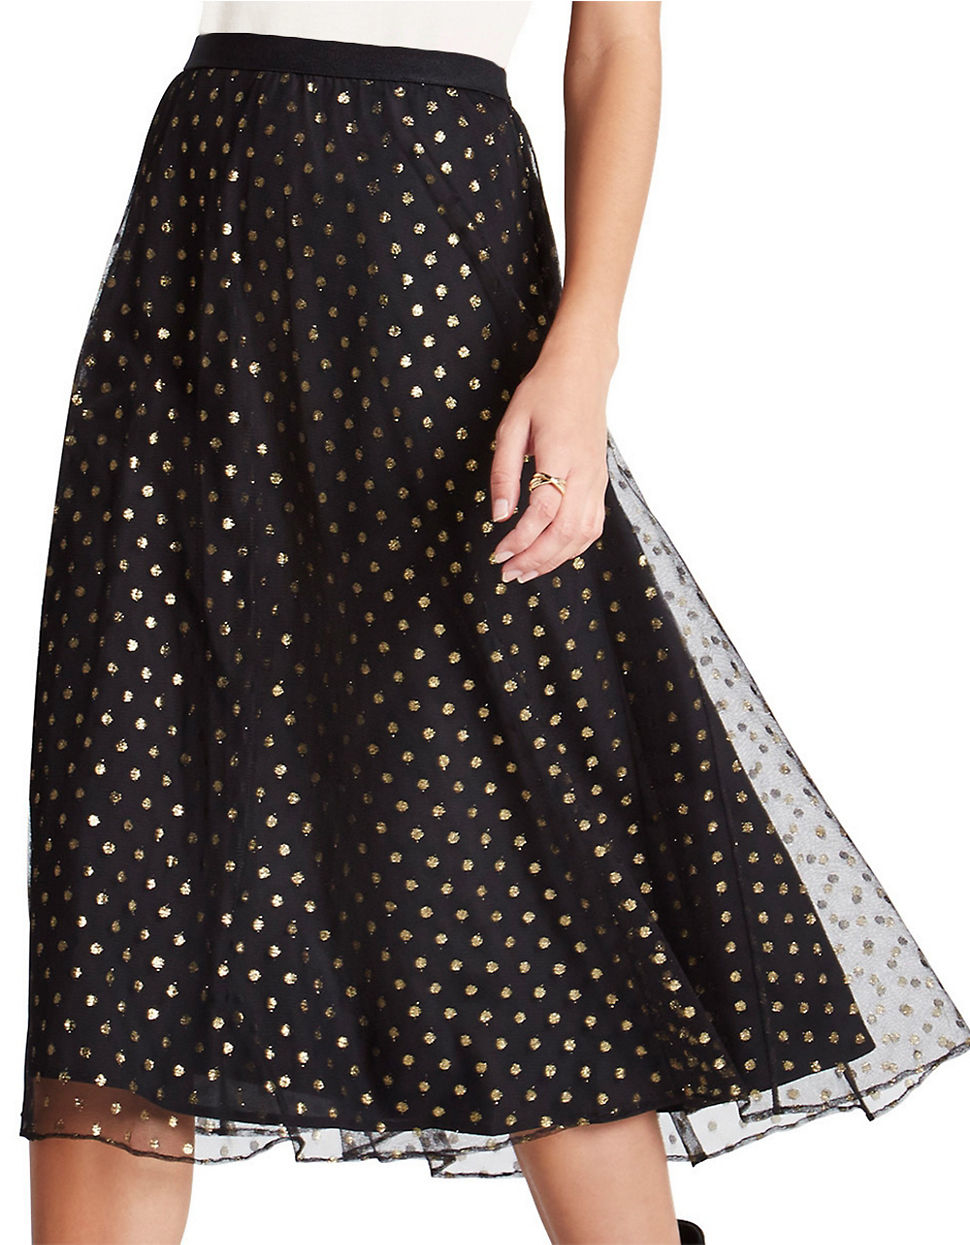 Bcbgeneration Metallic Dot Midi Tulle Skirt in Black | Lyst